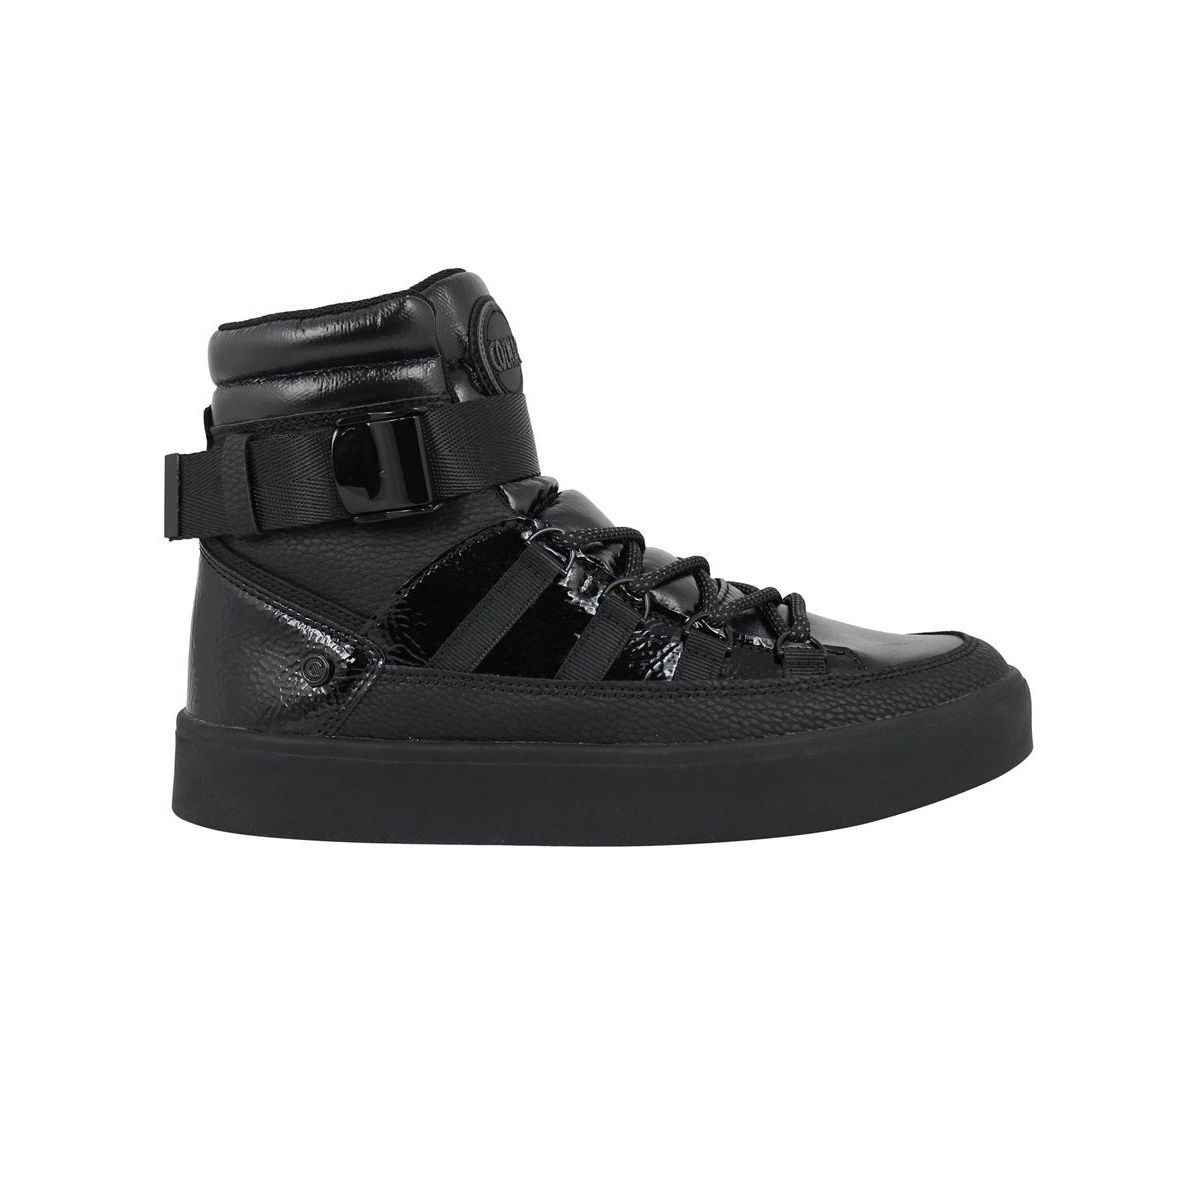 EVIE GLOSS high sneakers Black Colmar Shoes